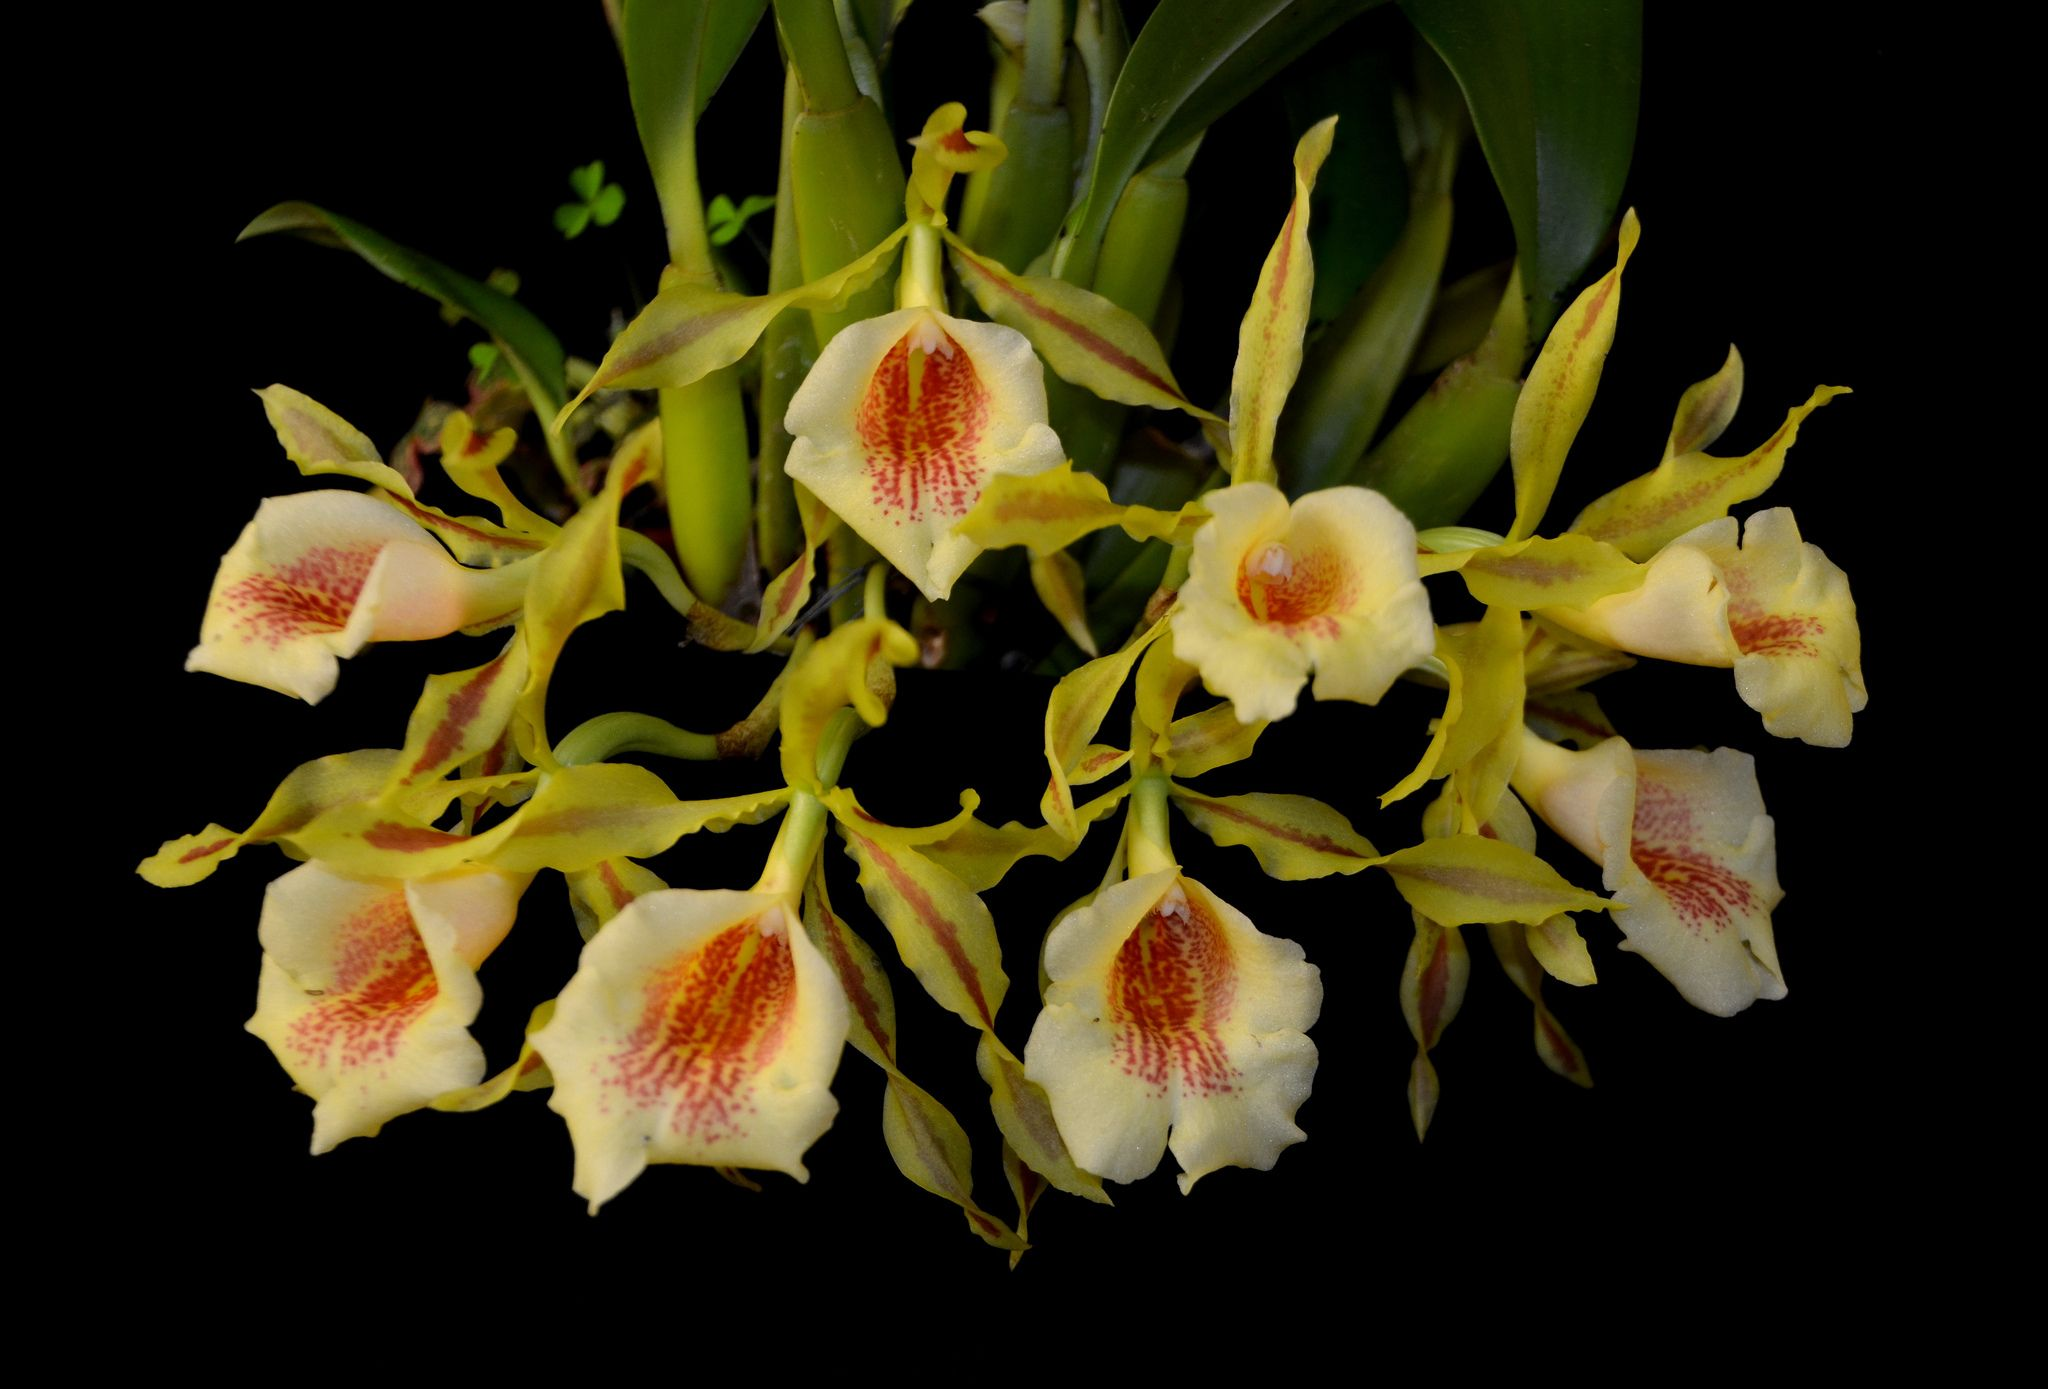 Trichopilia tortilis x turialbae orchid flowers and plants